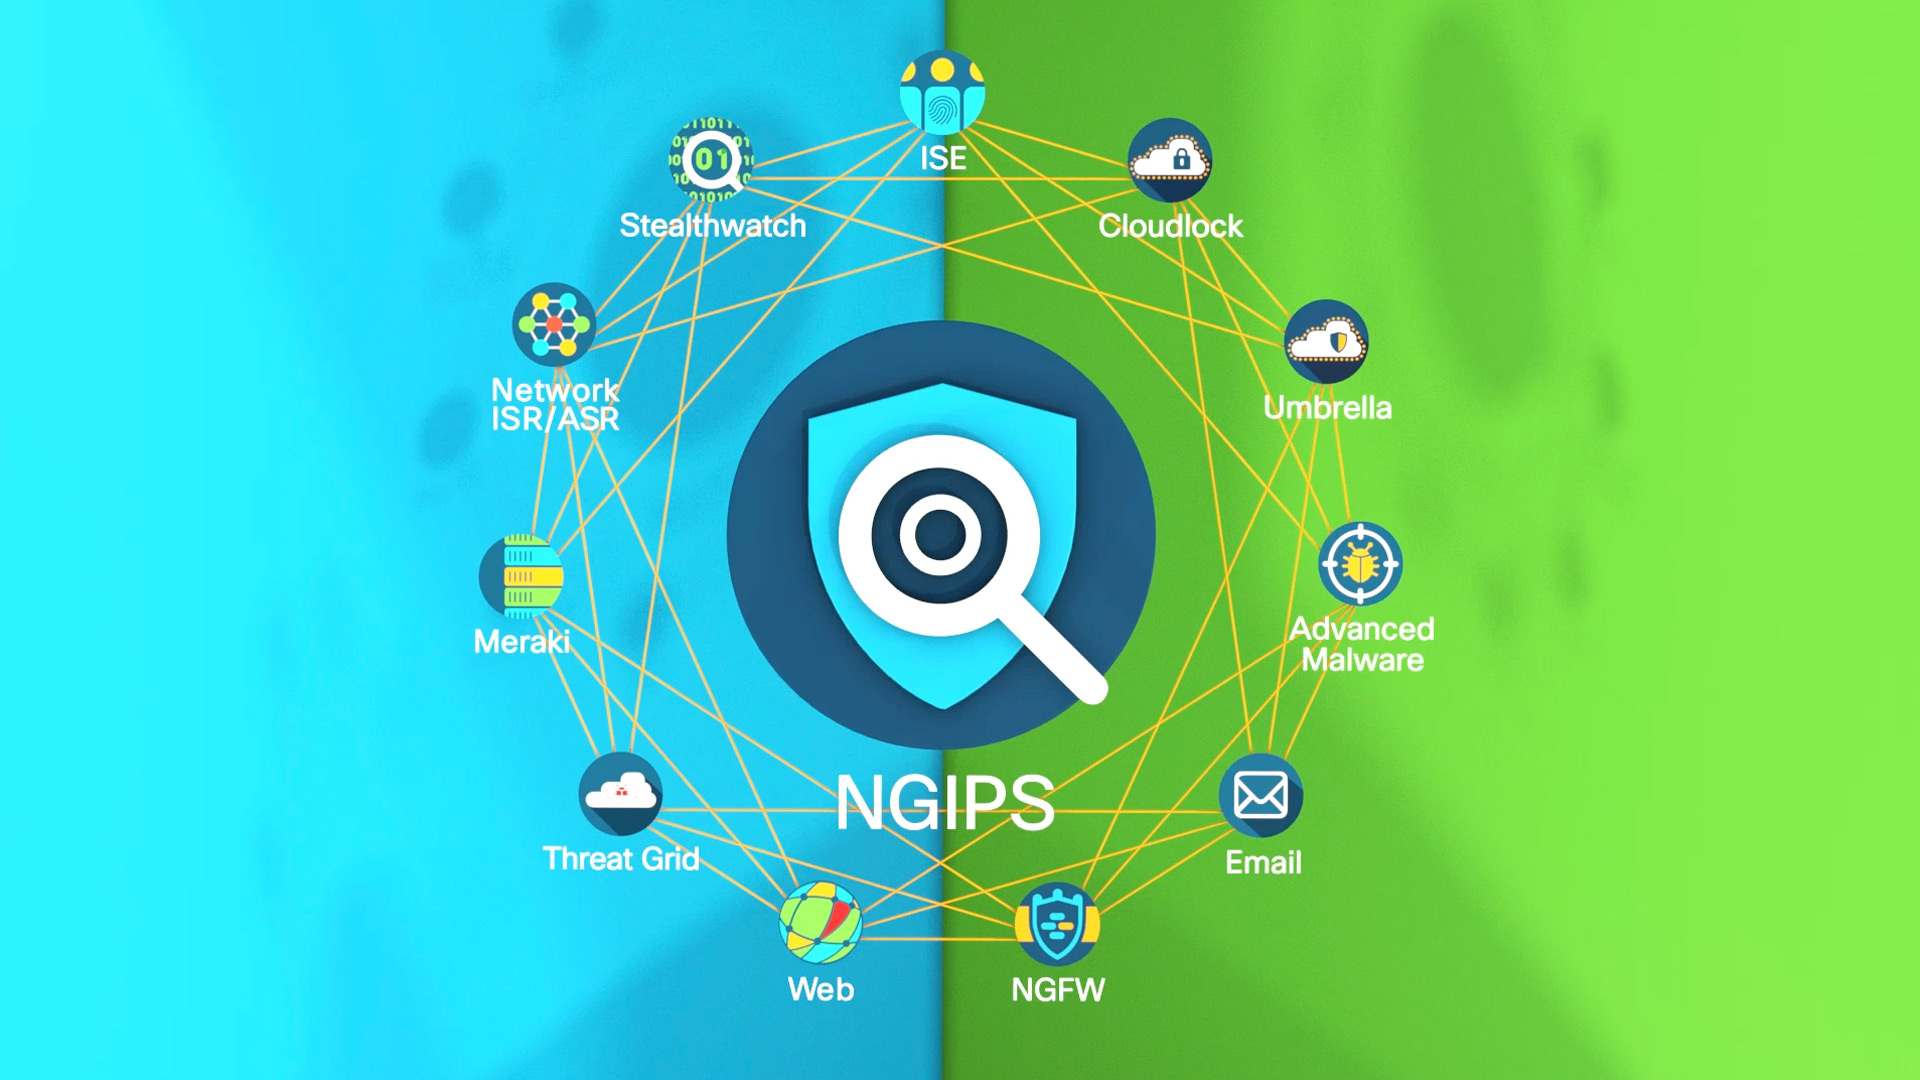 Cisco_NGIPS_Connections